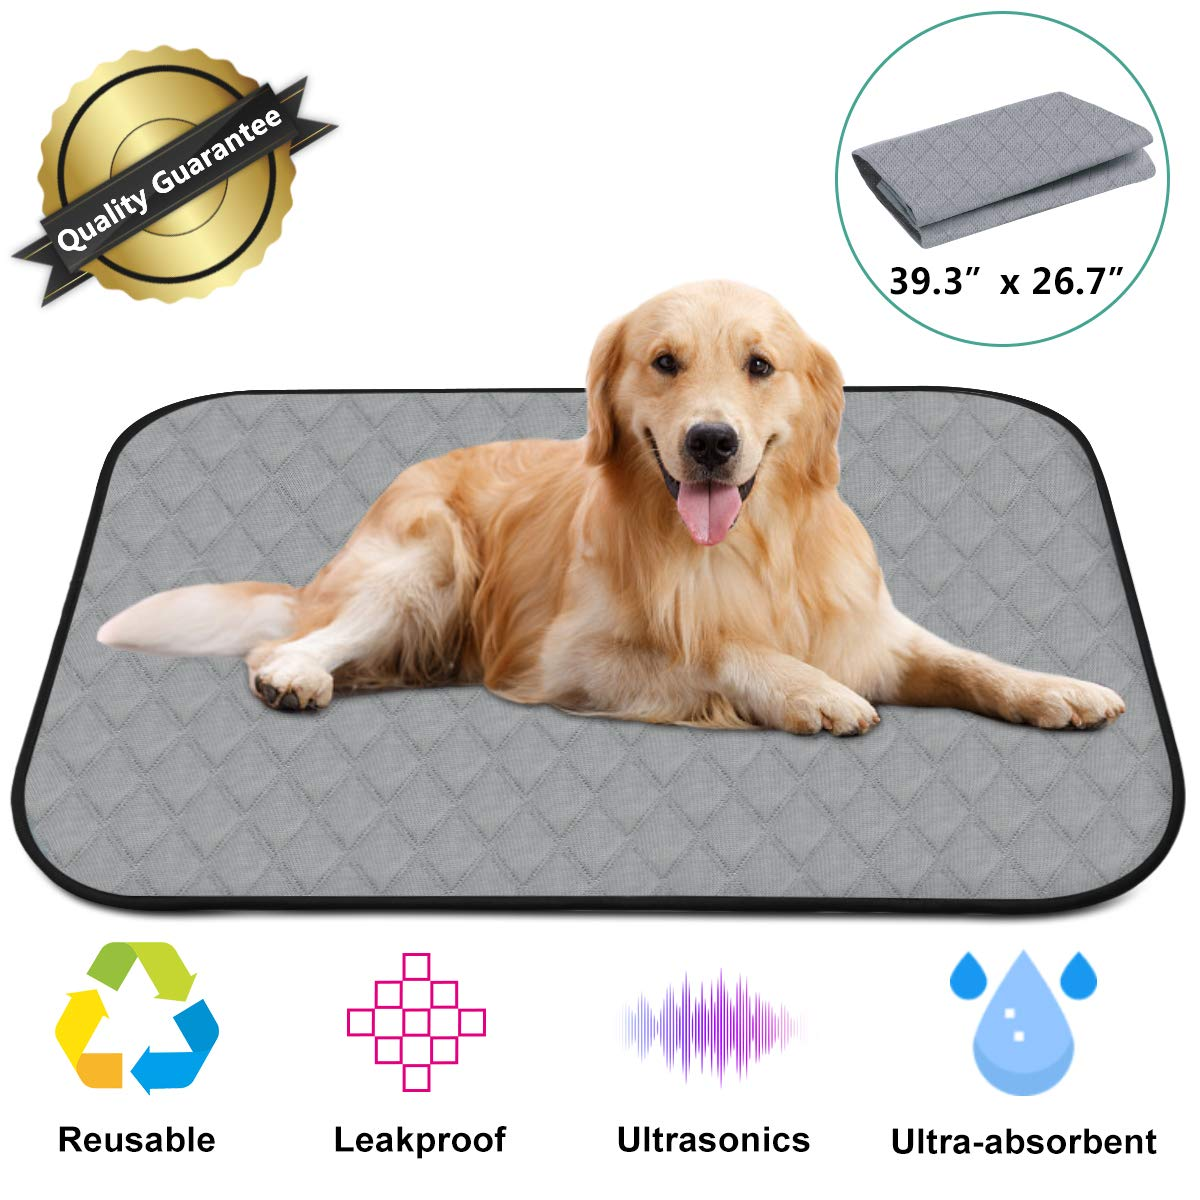 Dog Training Pads 1pcs Washable Pee Pads for Dogs 39.3 x 26.7 4 Layers Design with Anti-Skid Bottom Wee Wee Pads Training Reusable Kennel Mat